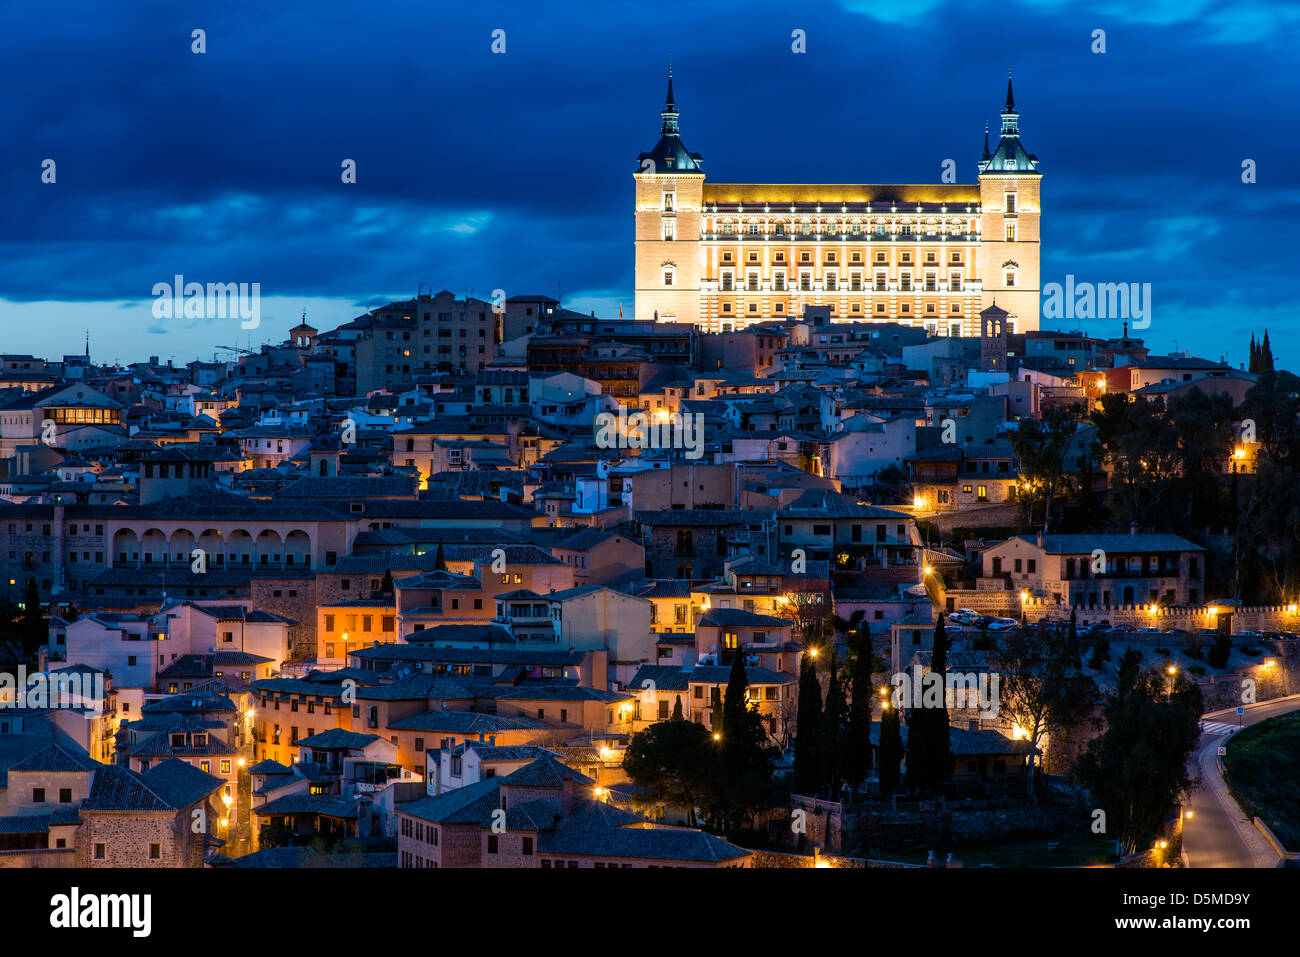 Night view of the Alcazar,  Toledo, Castile La Mancha, Spain - Stock Image